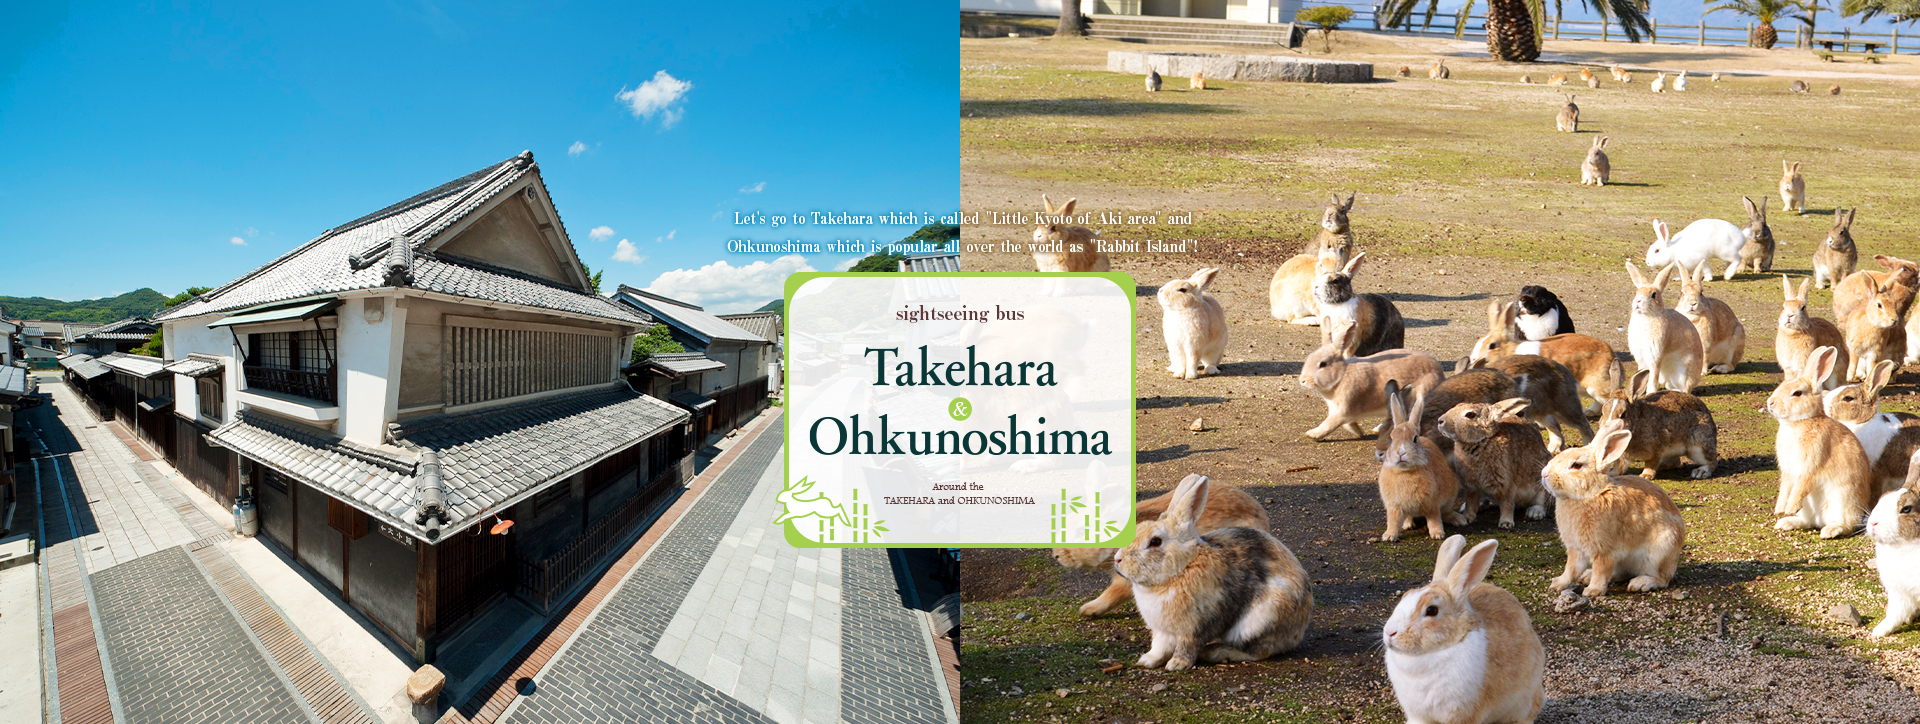 "To ""Ohkunoshima"" which is popular as Little Kyoto of Aki area ""Takehara"" and rabbit island! Sightseeing bus Takehara & Ohkunoshima"